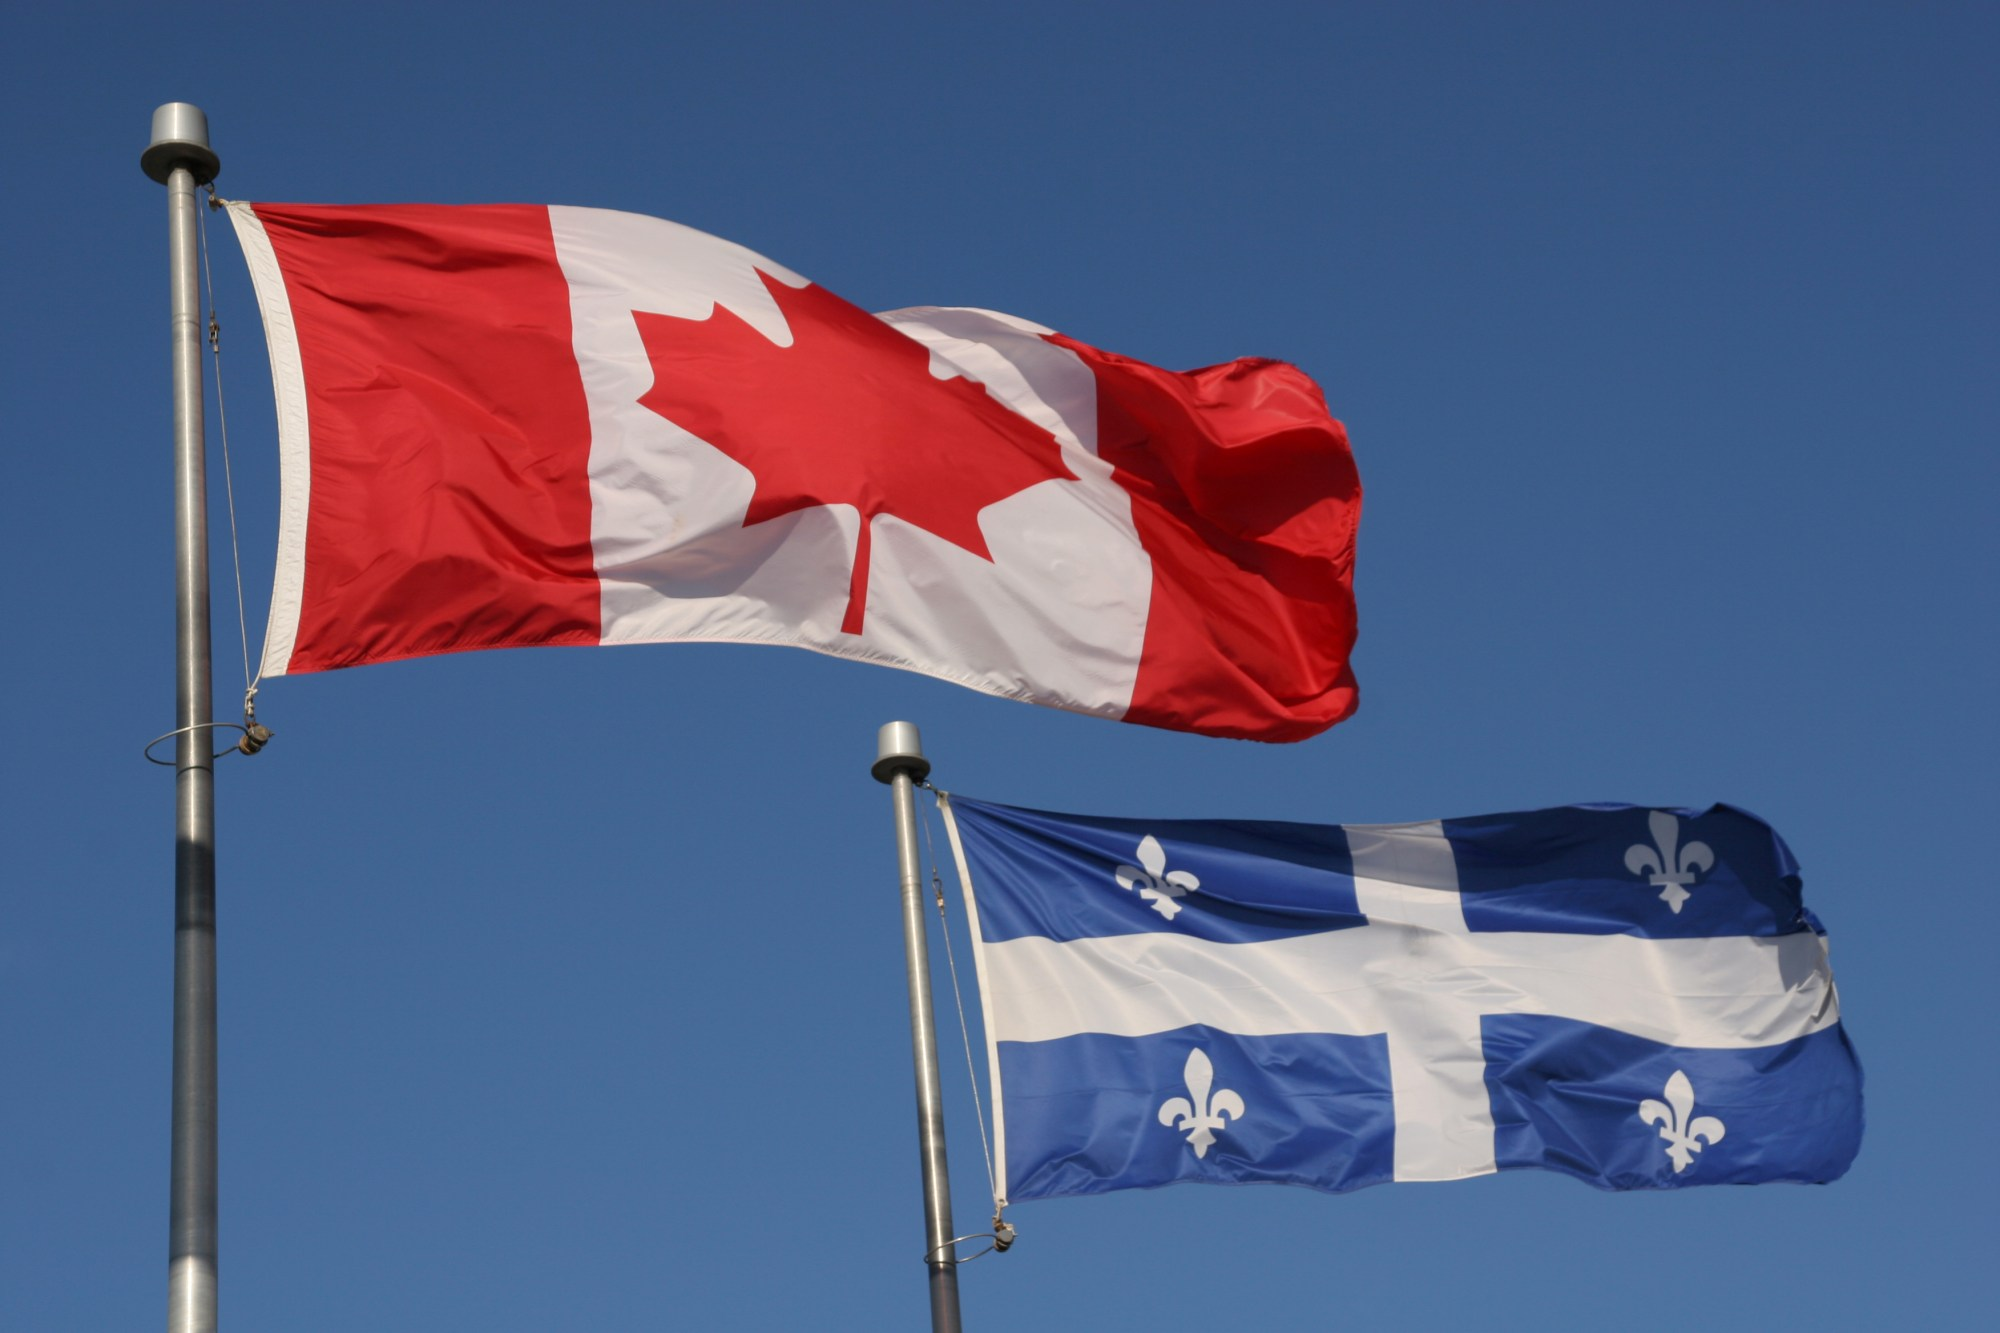 Canadian and Quebec provincial flags are seen in a file photo. (iStock/Getty Images Plus)